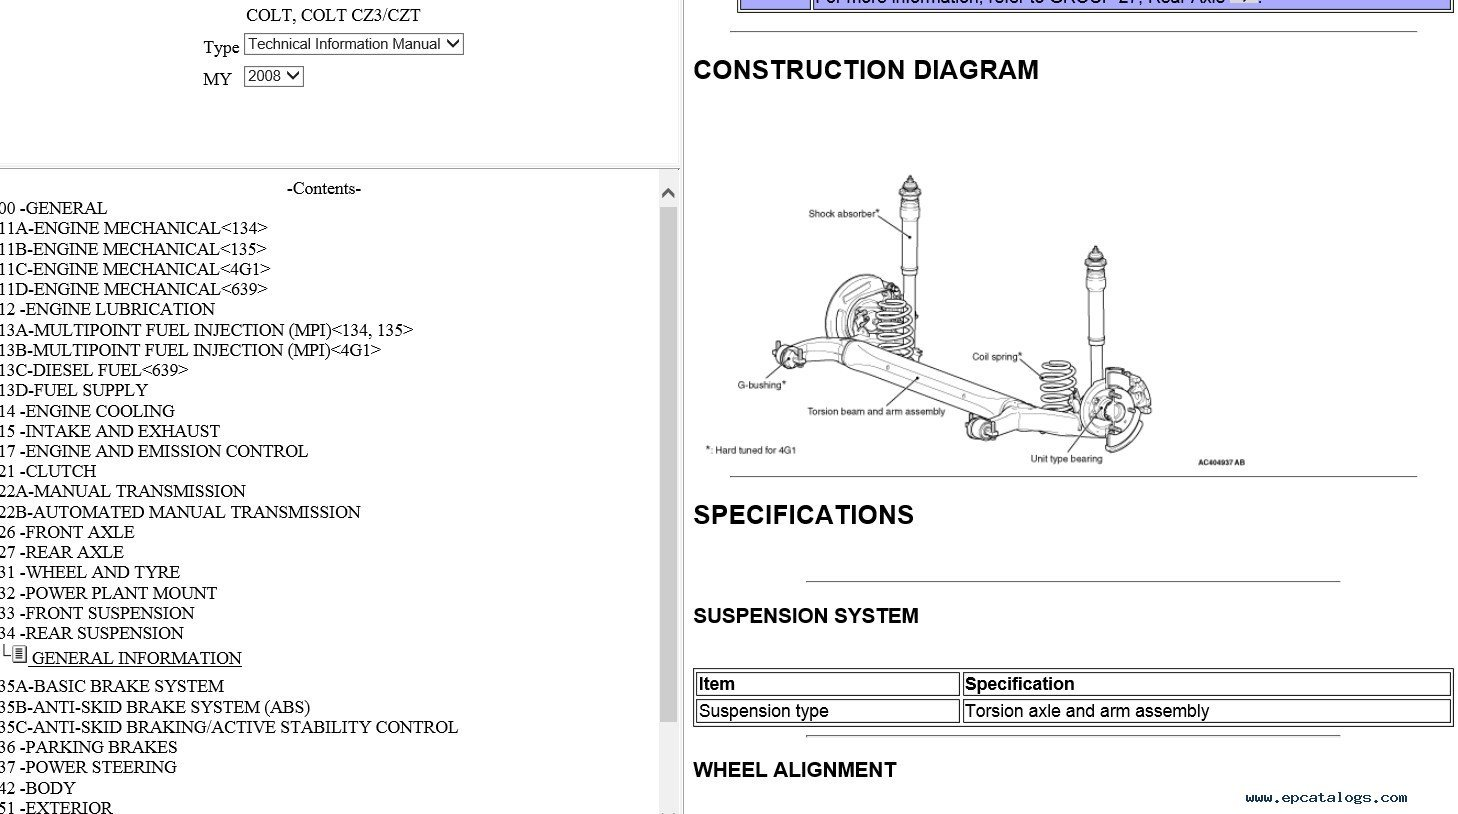 hight resolution of mitsubishi colt czt wiring diagram mitsubishi colt cz3 czt 2008rh epcatalogs